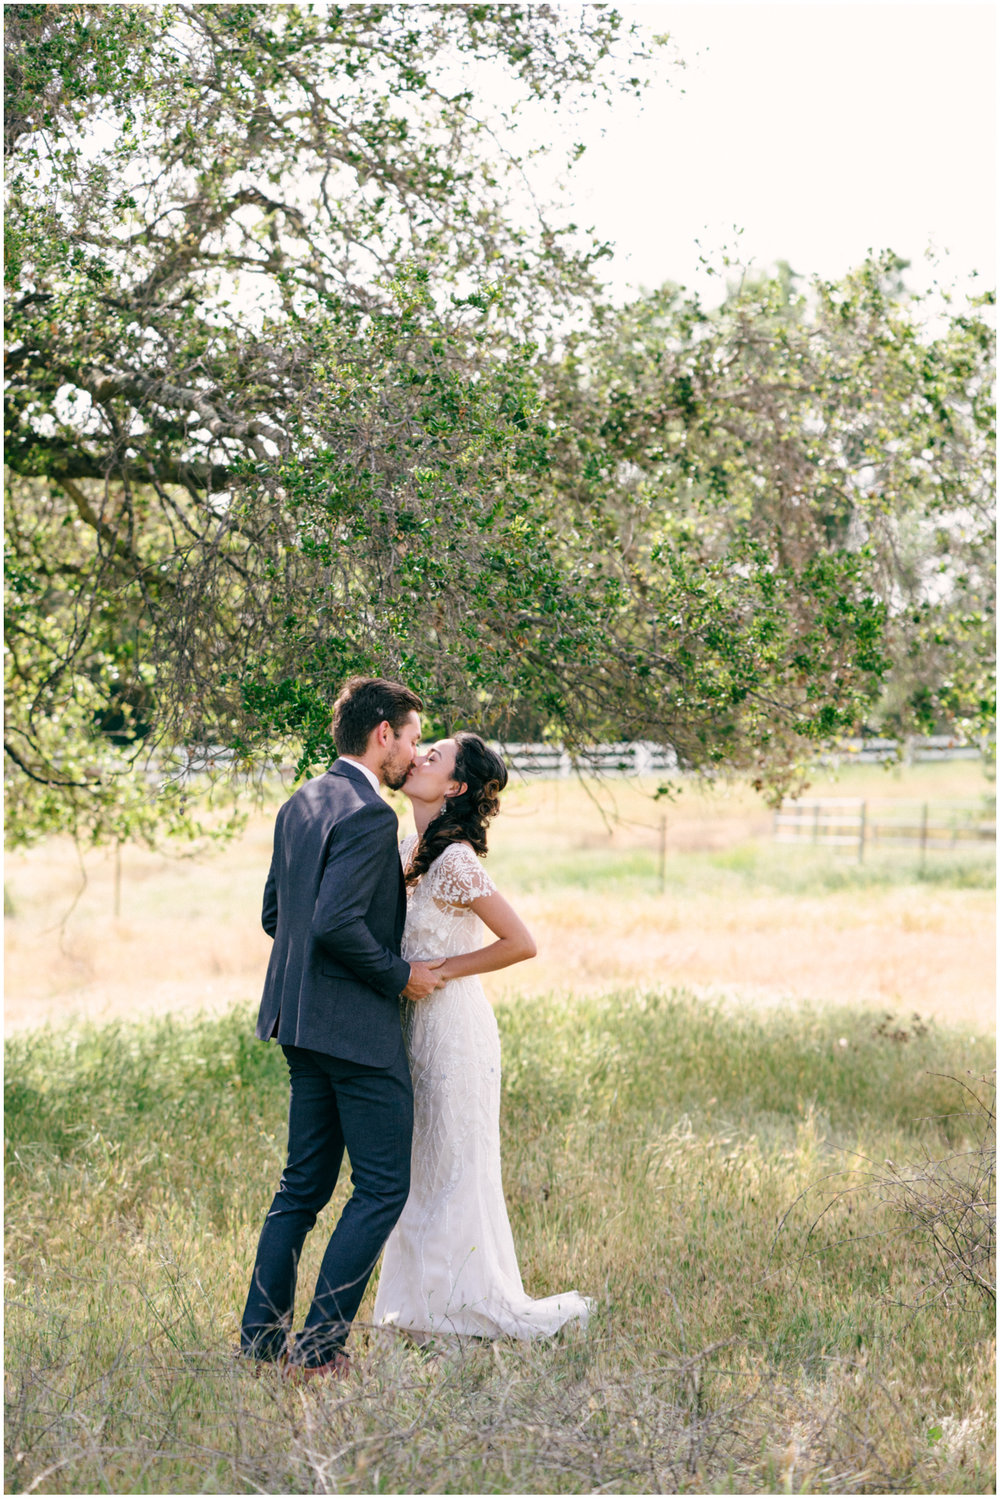 Santa_Barbara_Wedding_Photographer_Ojai_Wedding_Pinnel_Photography_L&E-018.jpg